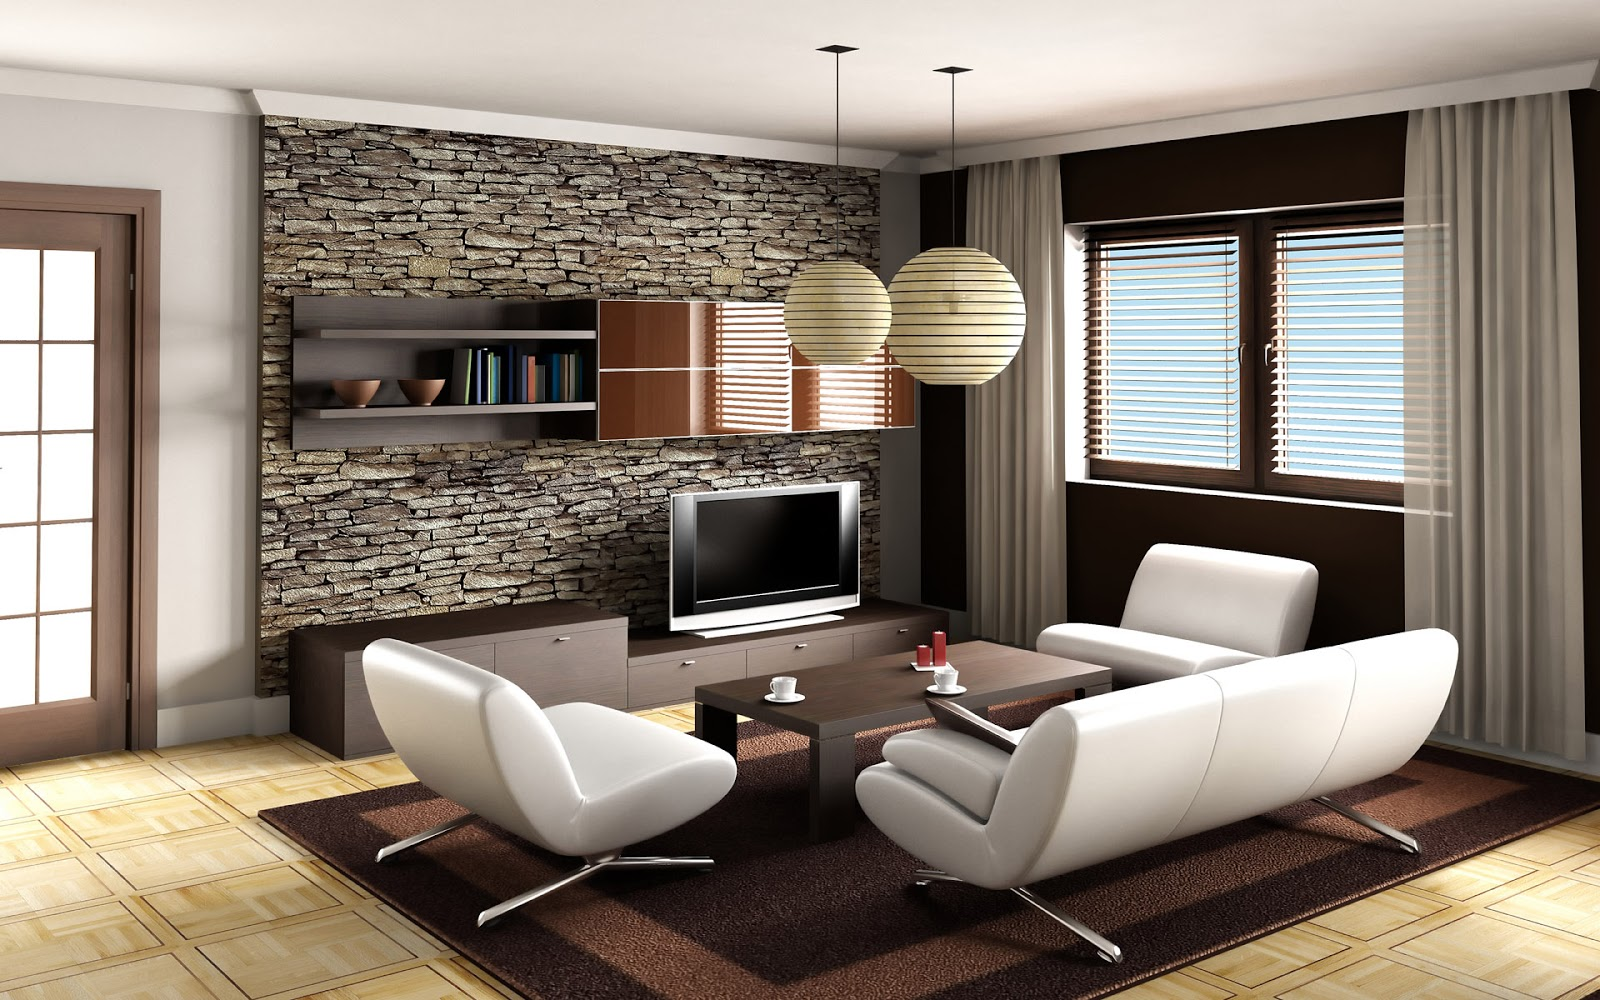 Arrangement of luxury living room ideas dream house for Minimalist living room design ideas